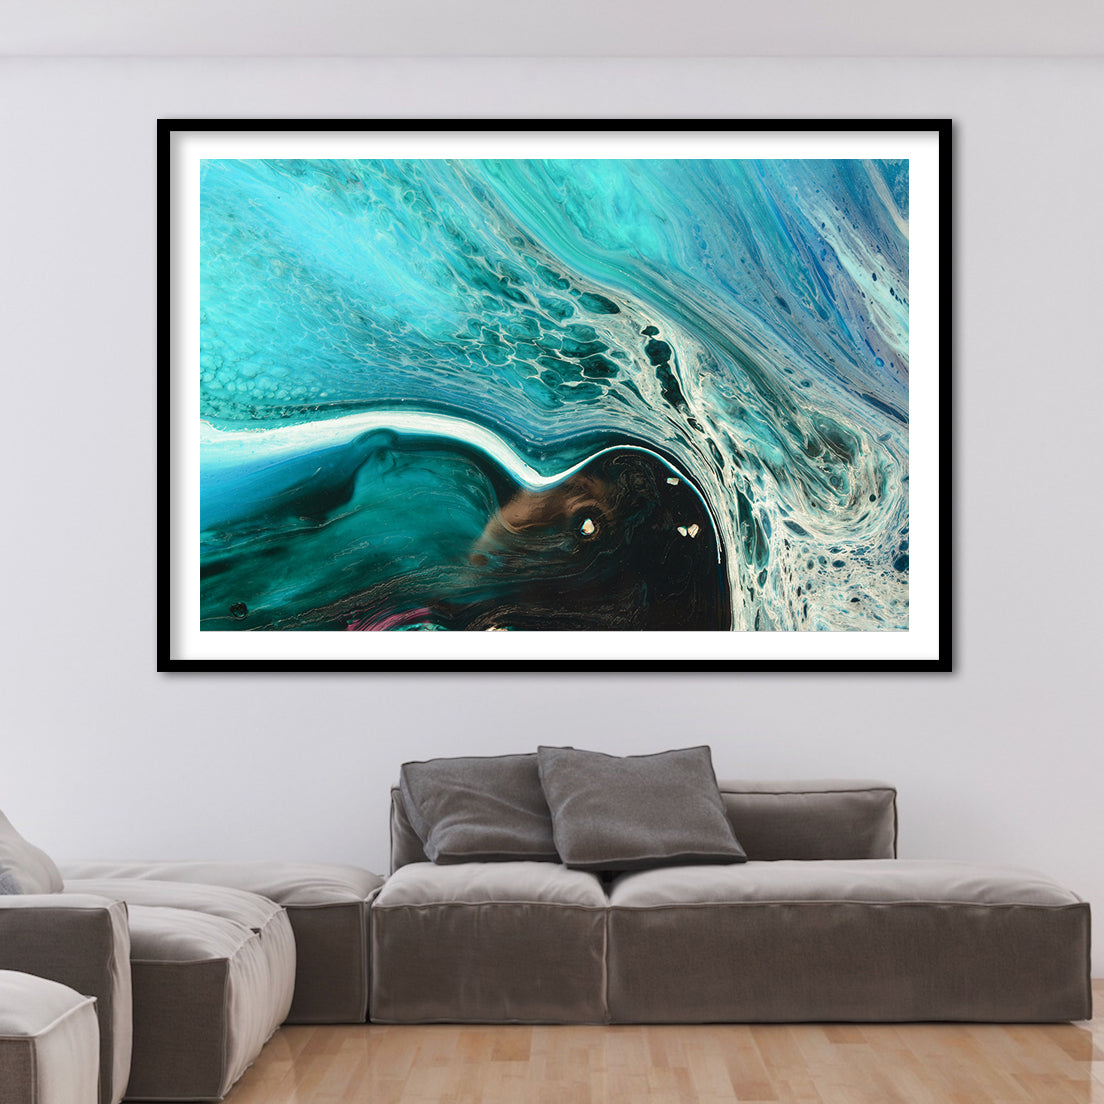 Abstract Seascape. Rise Above Inlet 2 Tropical. Art Print. Antuanelle 3 Tropical Artwork. Limited Edition Print